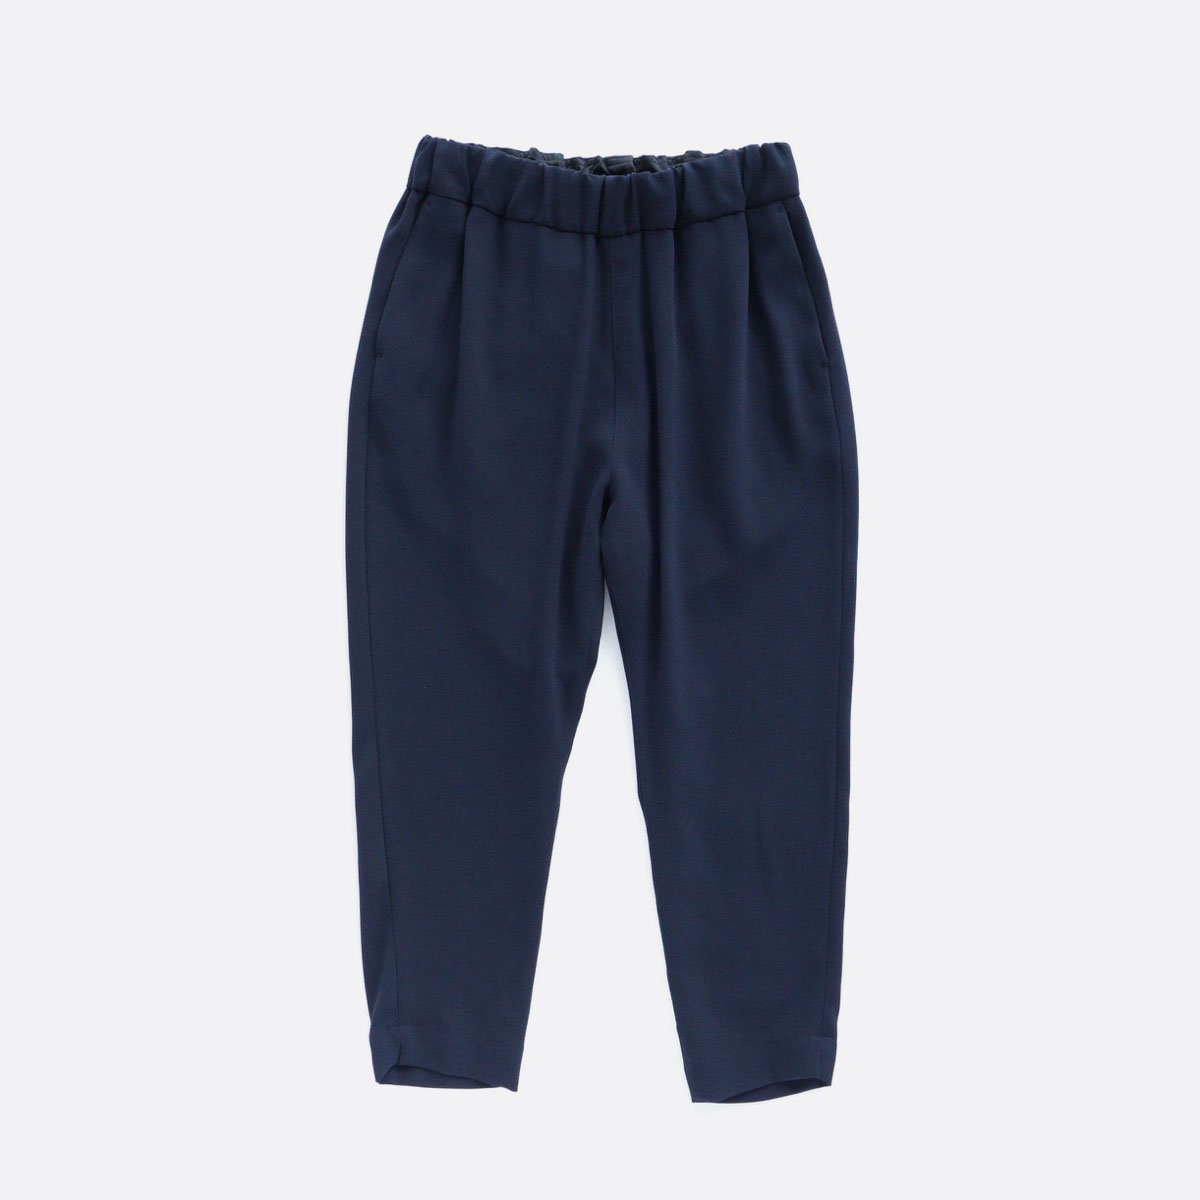 NO CONTROL AIR ACETATE & POLYESTER DOUBLE CLOTH TAPERED EASY PANTS (navy)